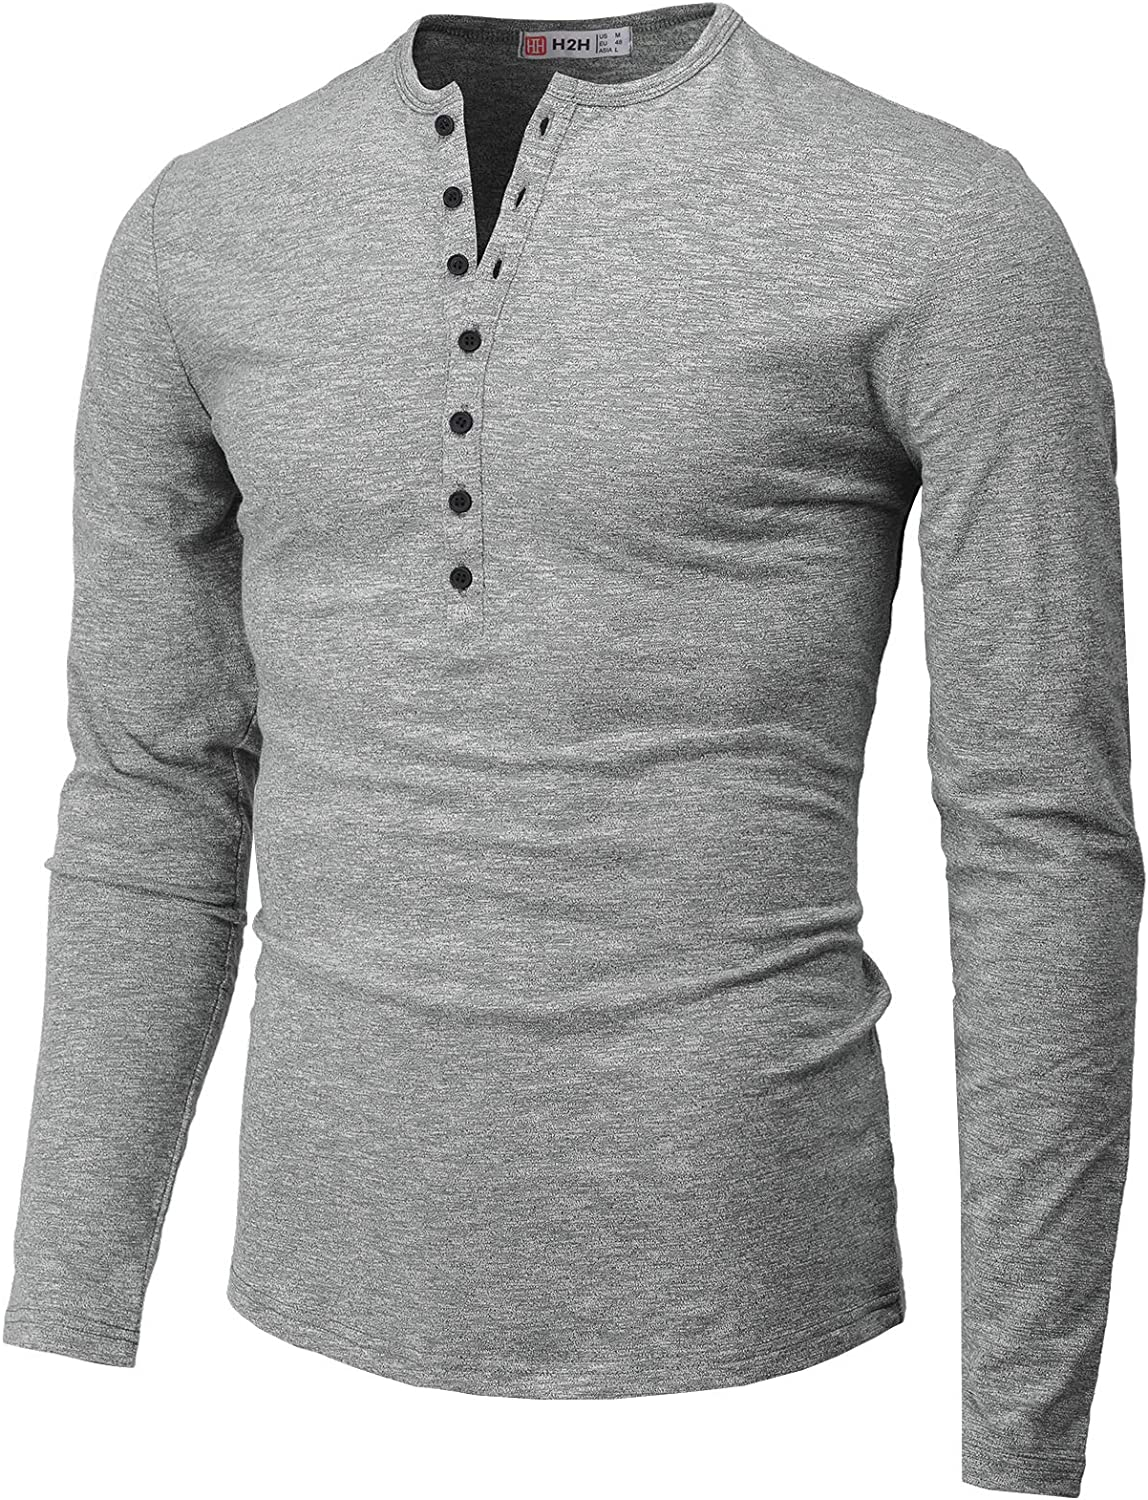 2019 Personality Mens Casual Slim Fit Long Sleeve Henley T Shirts of Waffle Cotton by G-Real